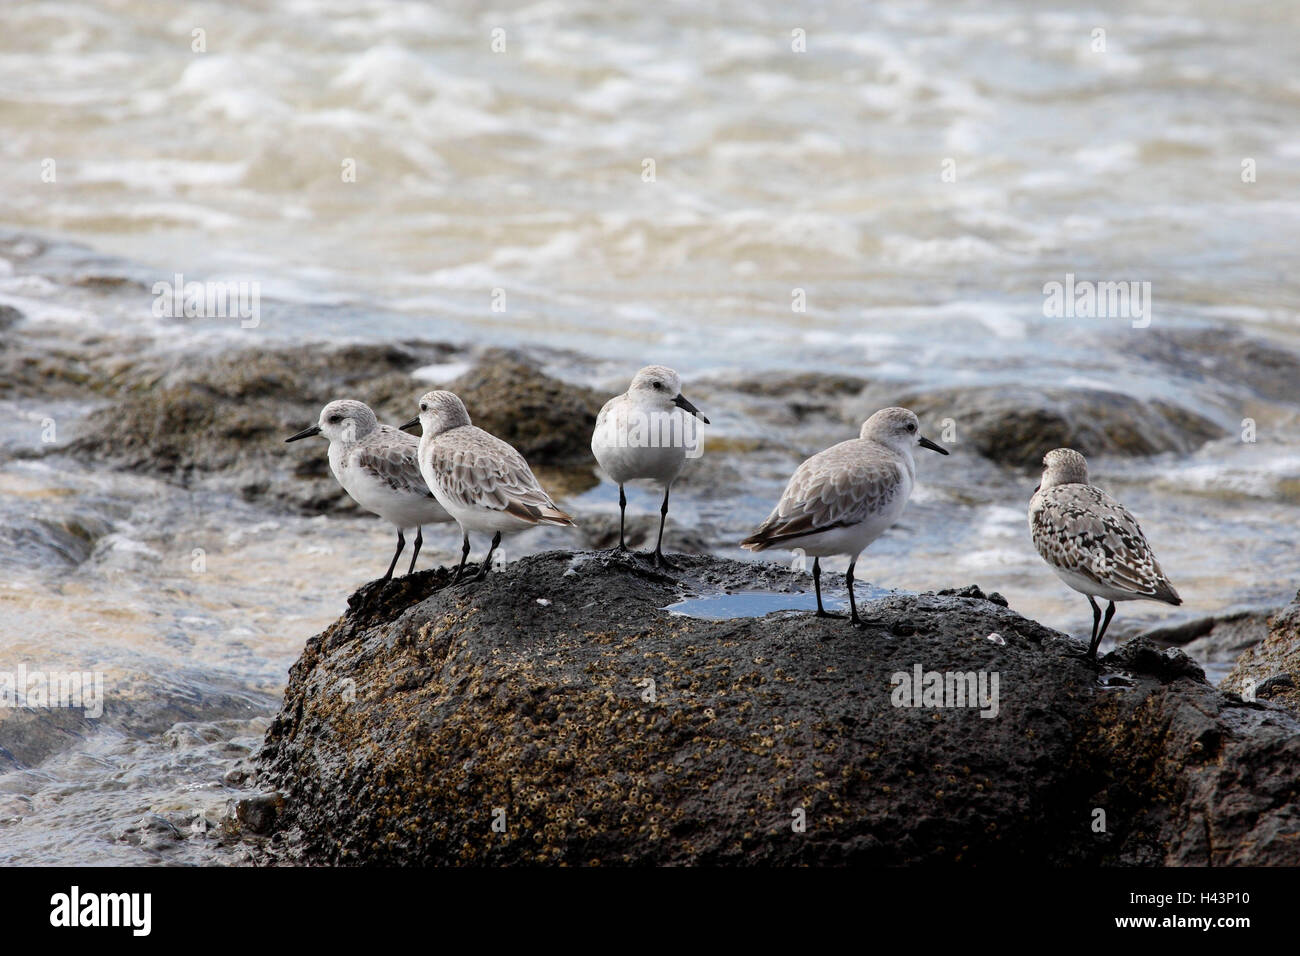 Sanderling, Crocethia alb, rock, sea, five, - Stock Image